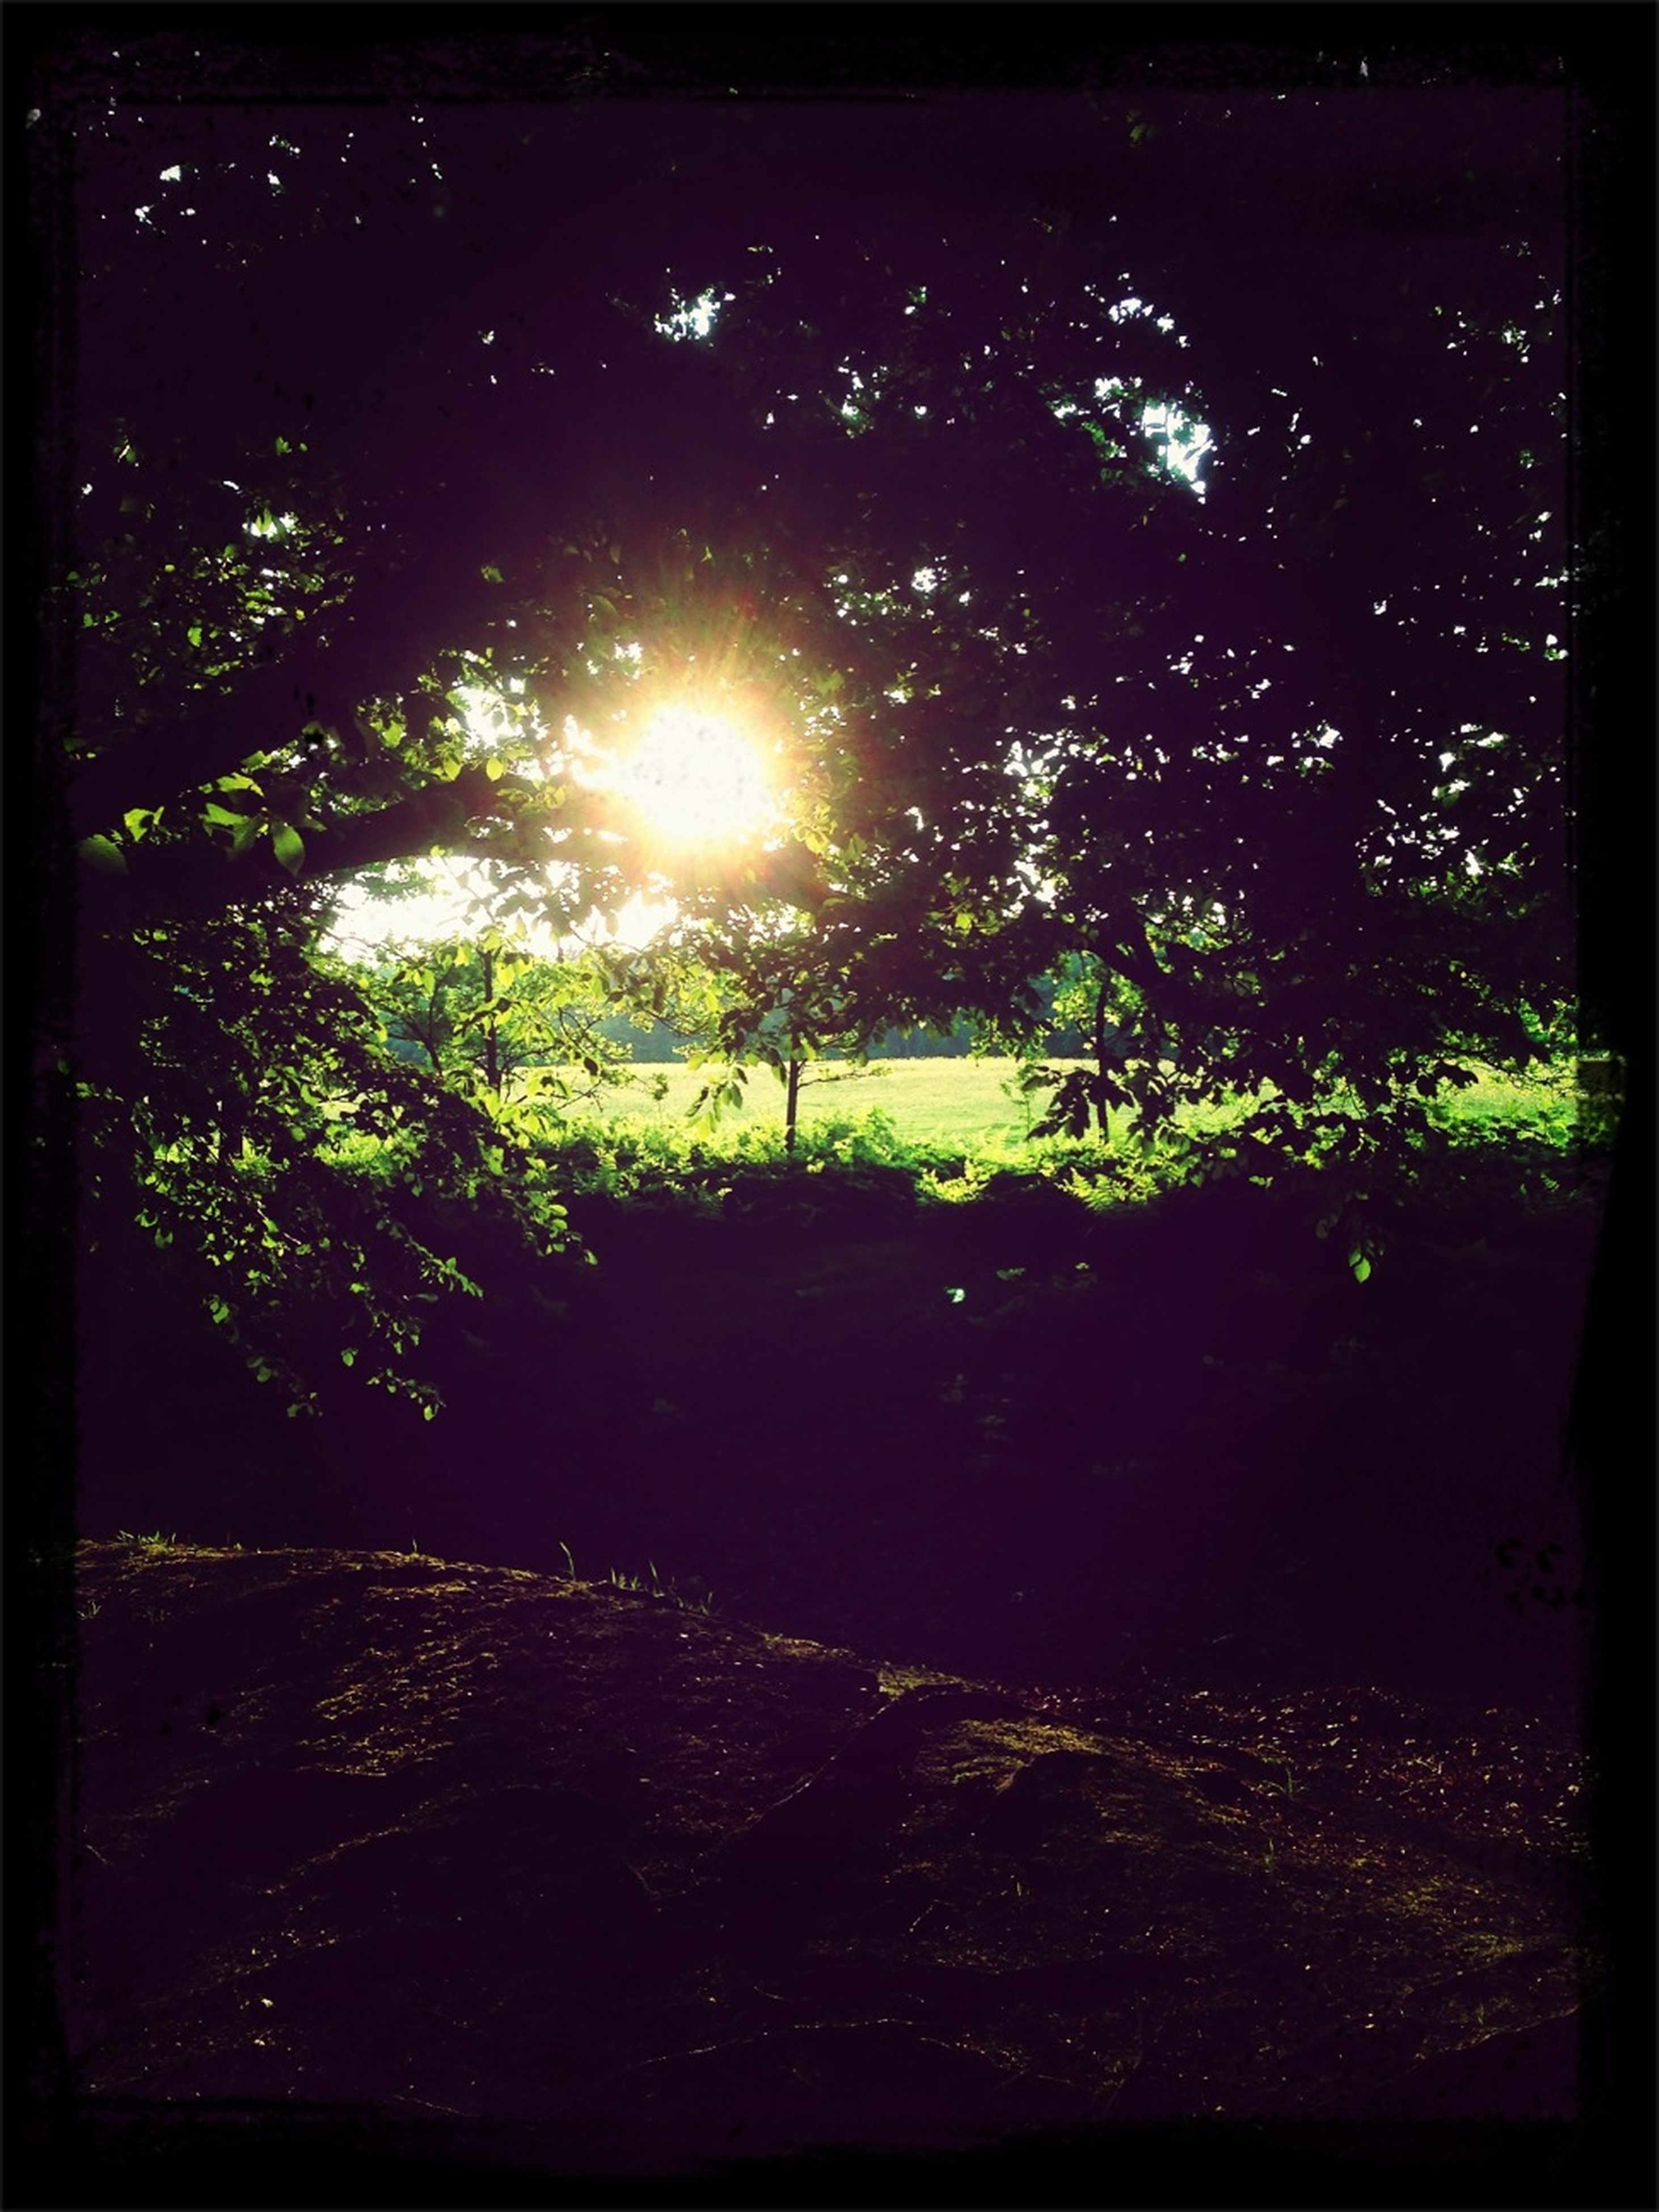 tree, night, transfer print, illuminated, lens flare, auto post production filter, growth, nature, tranquility, sun, beauty in nature, glowing, sunlight, tranquil scene, sunbeam, outdoors, scenics, park - man made space, no people, street light